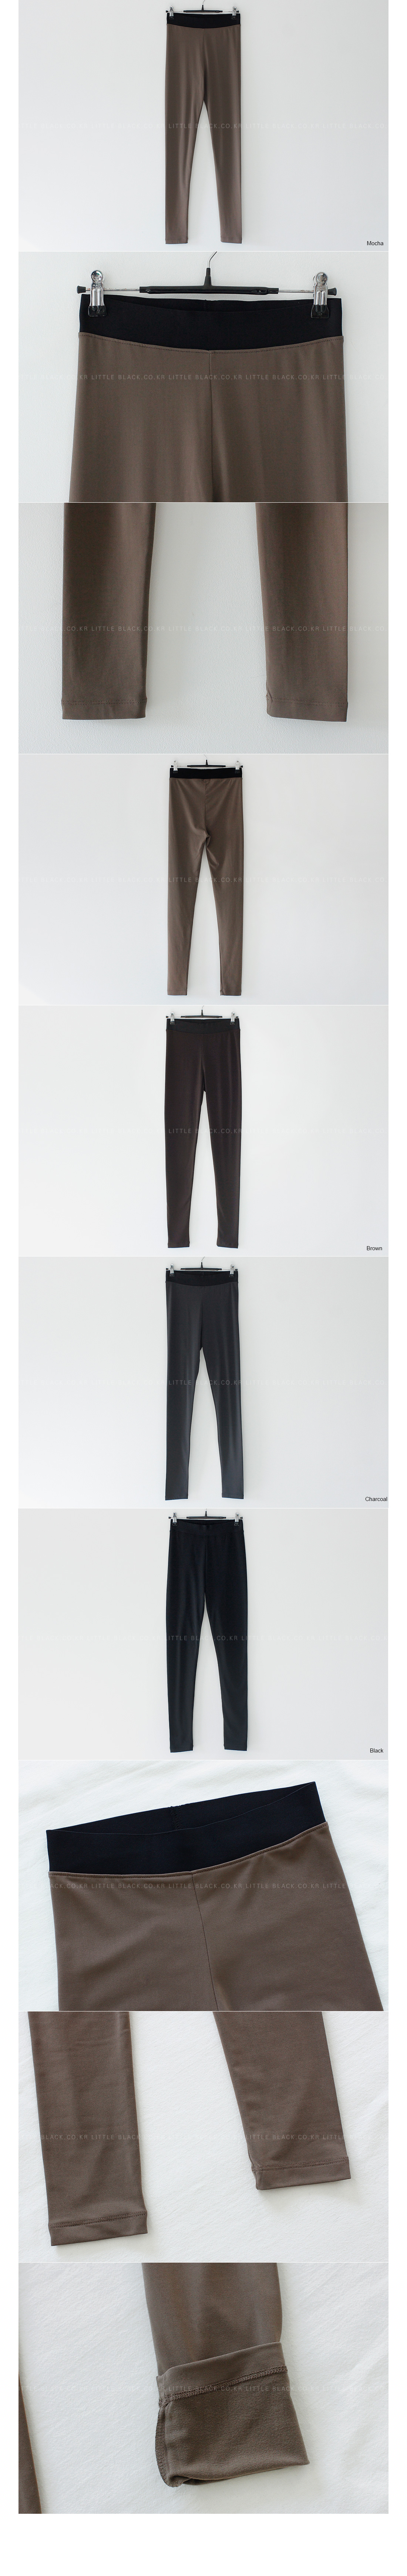 Fleece Lined Leggings|